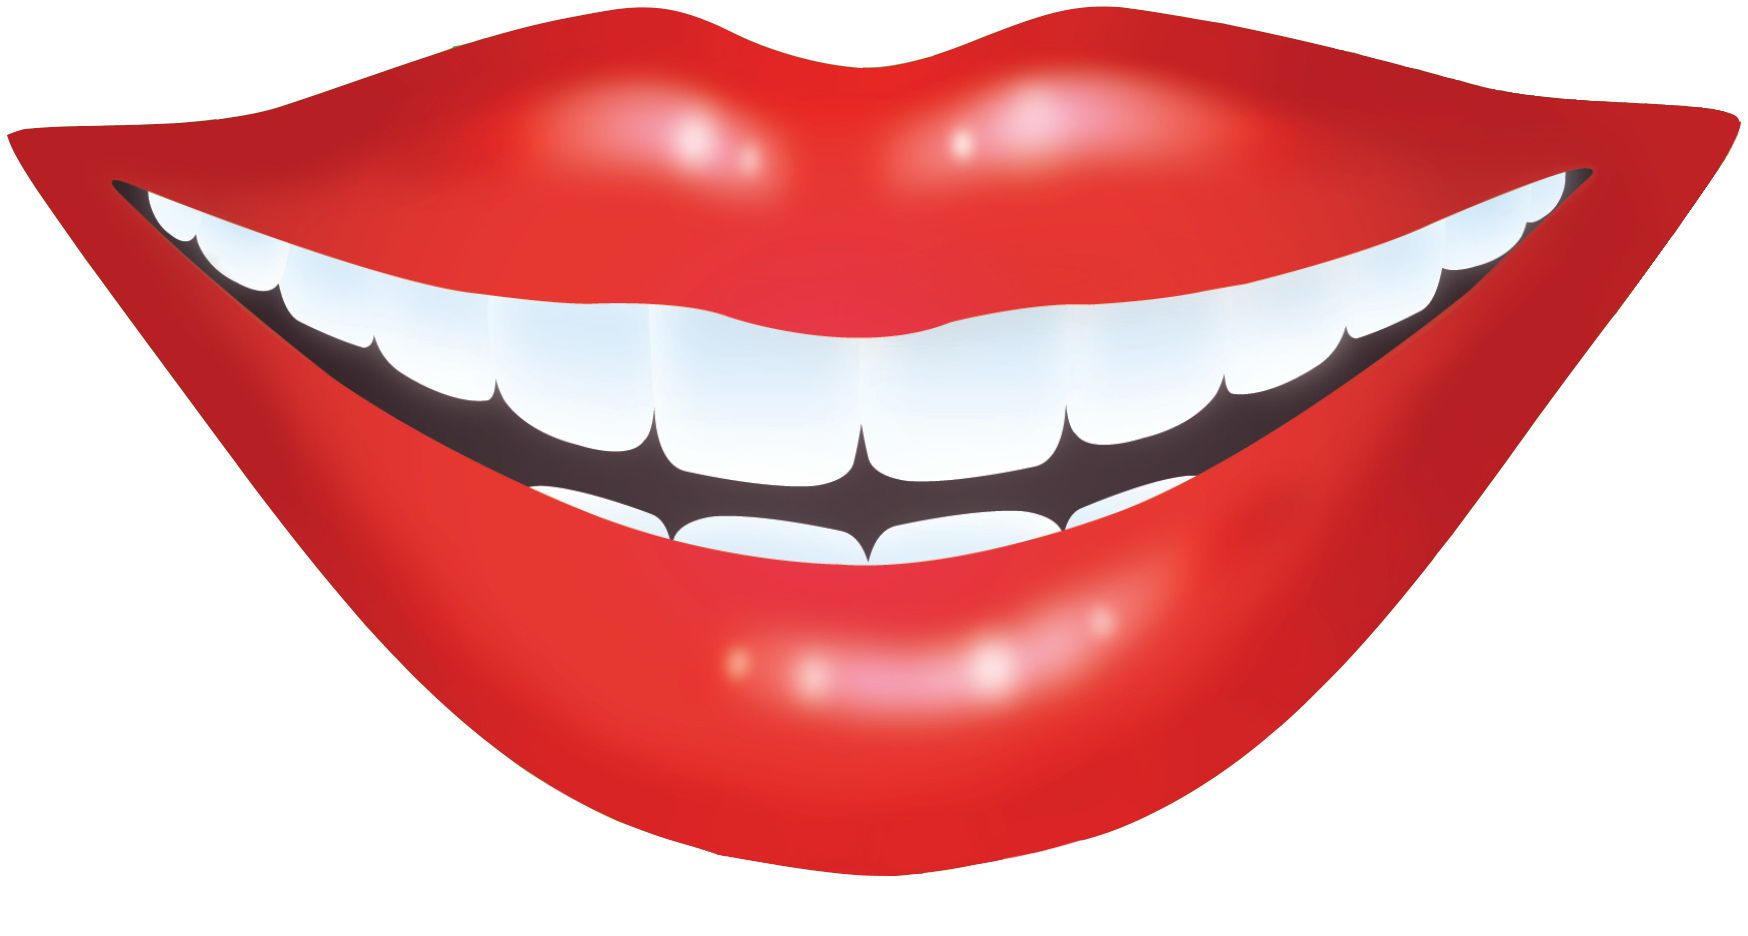 clipart of lips - photo #17